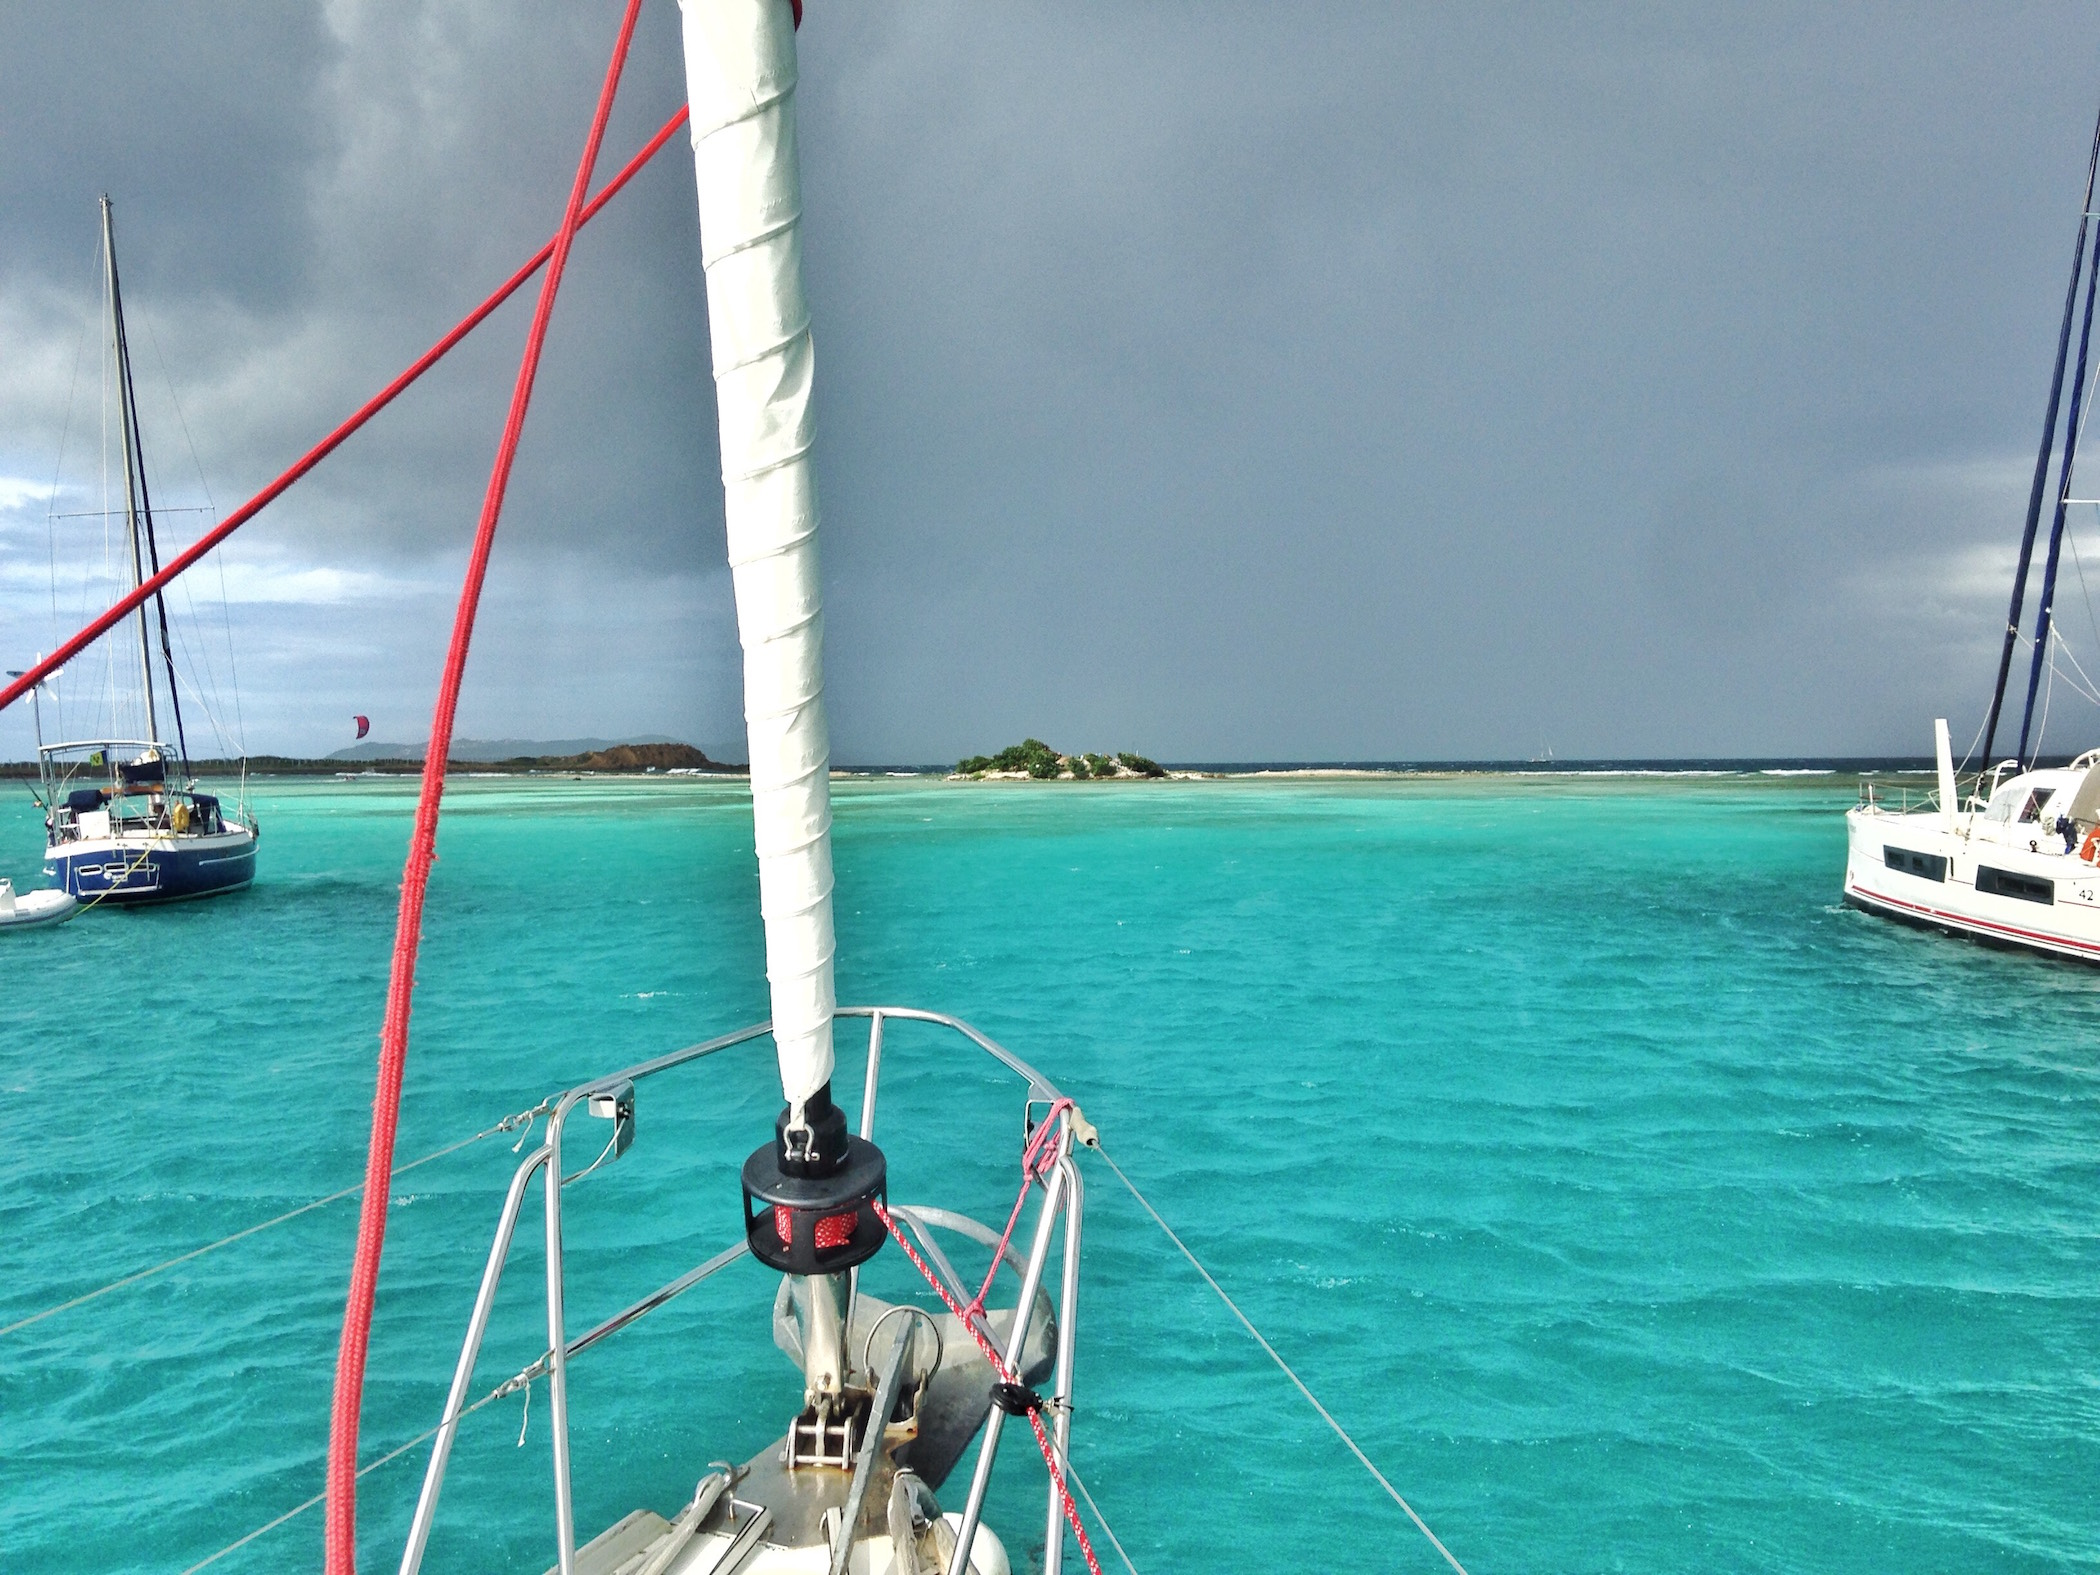 Anchored in Clifton, Union Island. Squally day!